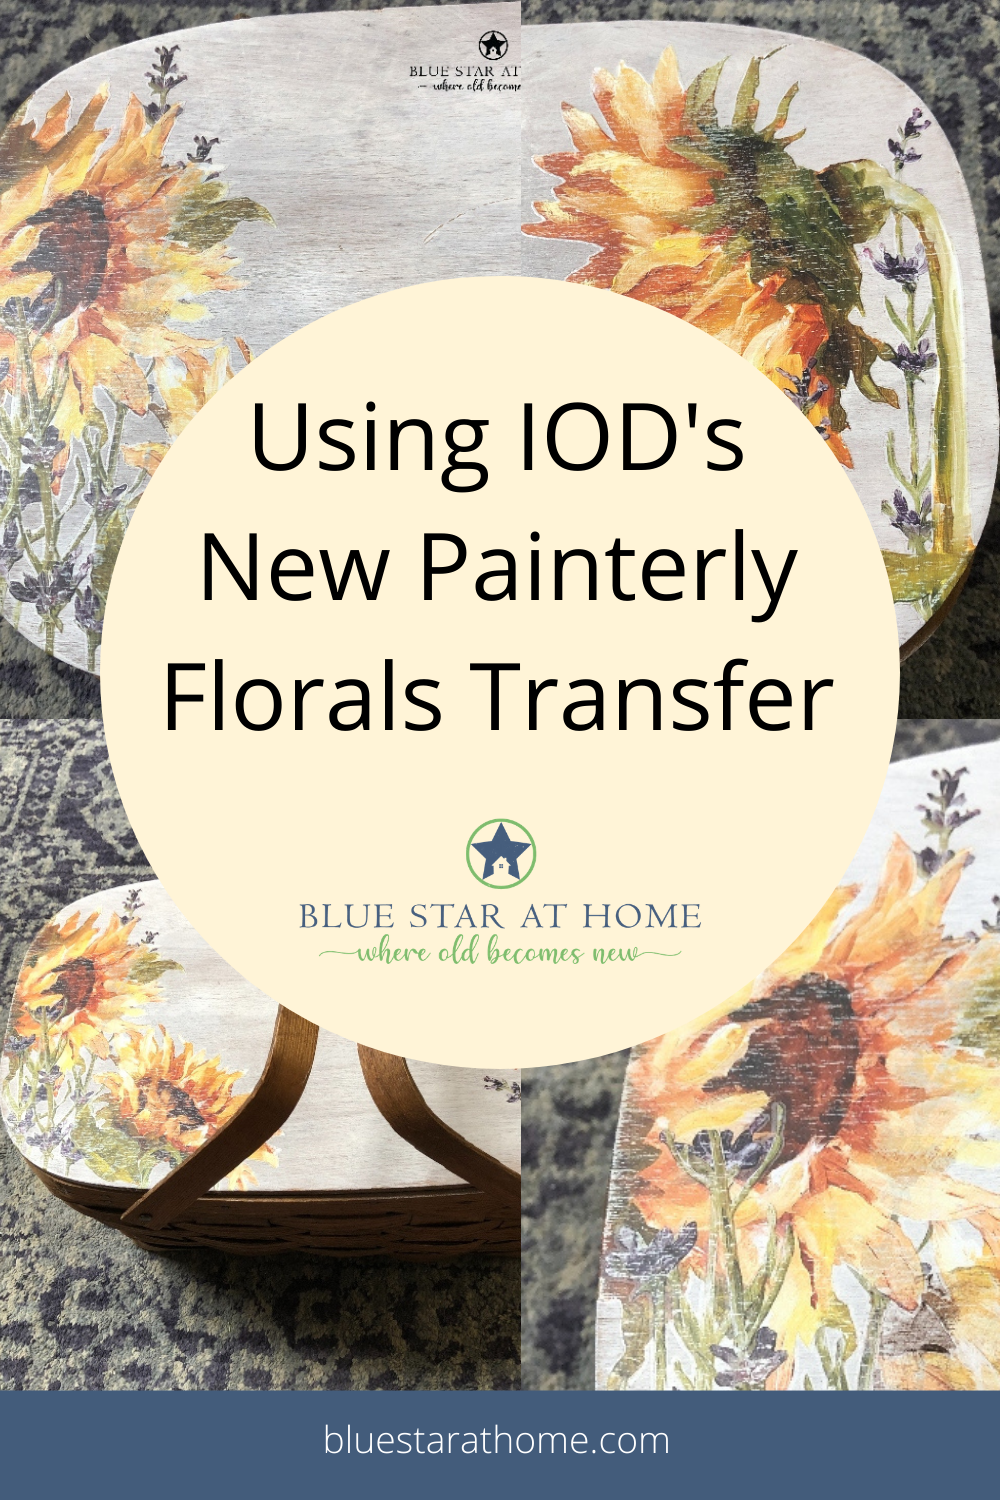 Using IOD's Painterly Florals